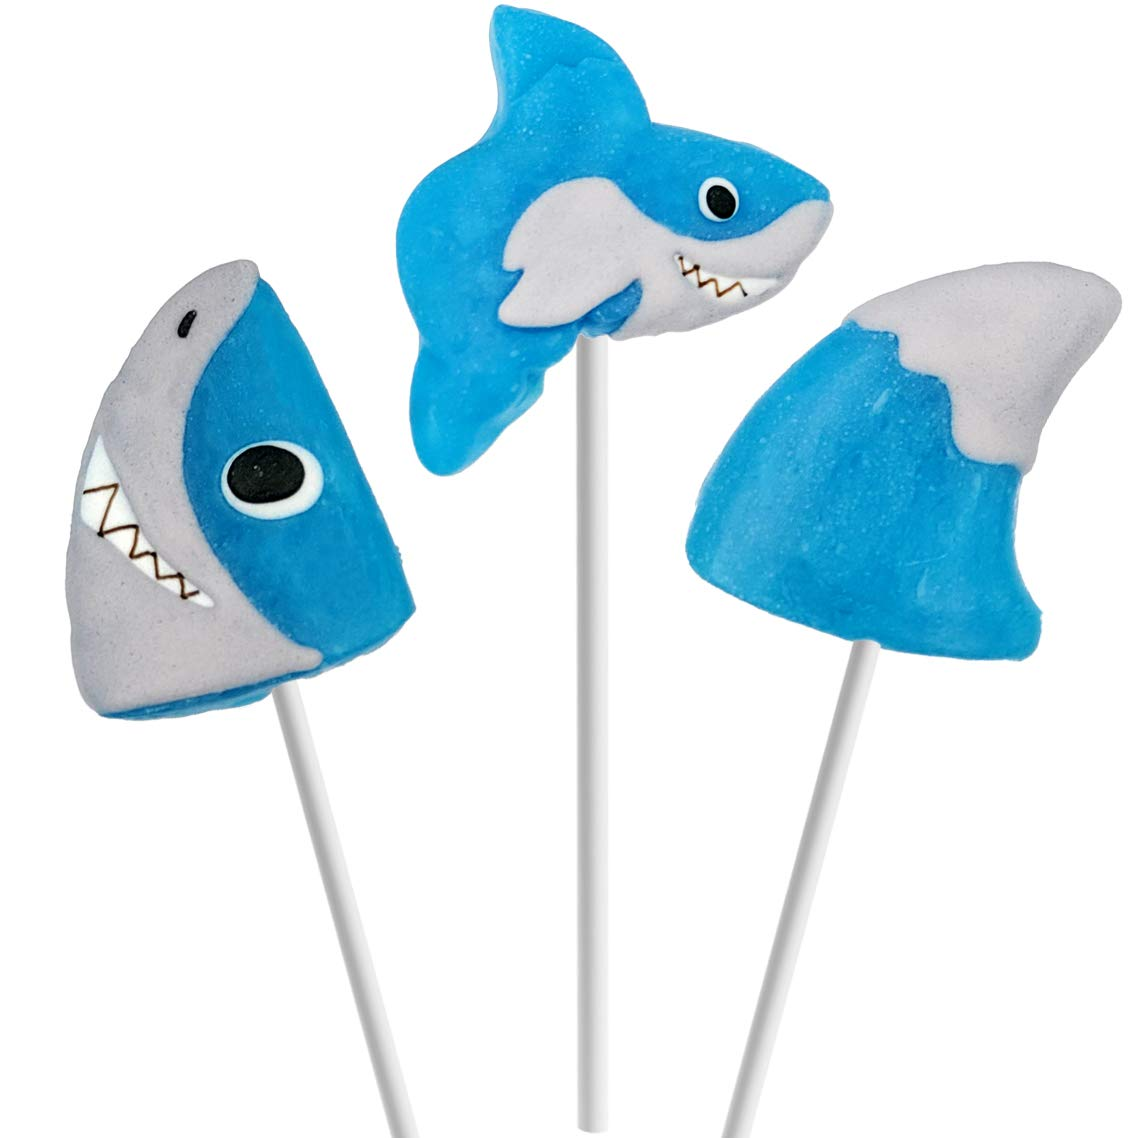 Fruidles Party Fun Shark Lollipops Variety 12 Pack Mixed Fruit Flavor Party Suckers Perfect Shark Party Favors For Your Shark Birthday Party